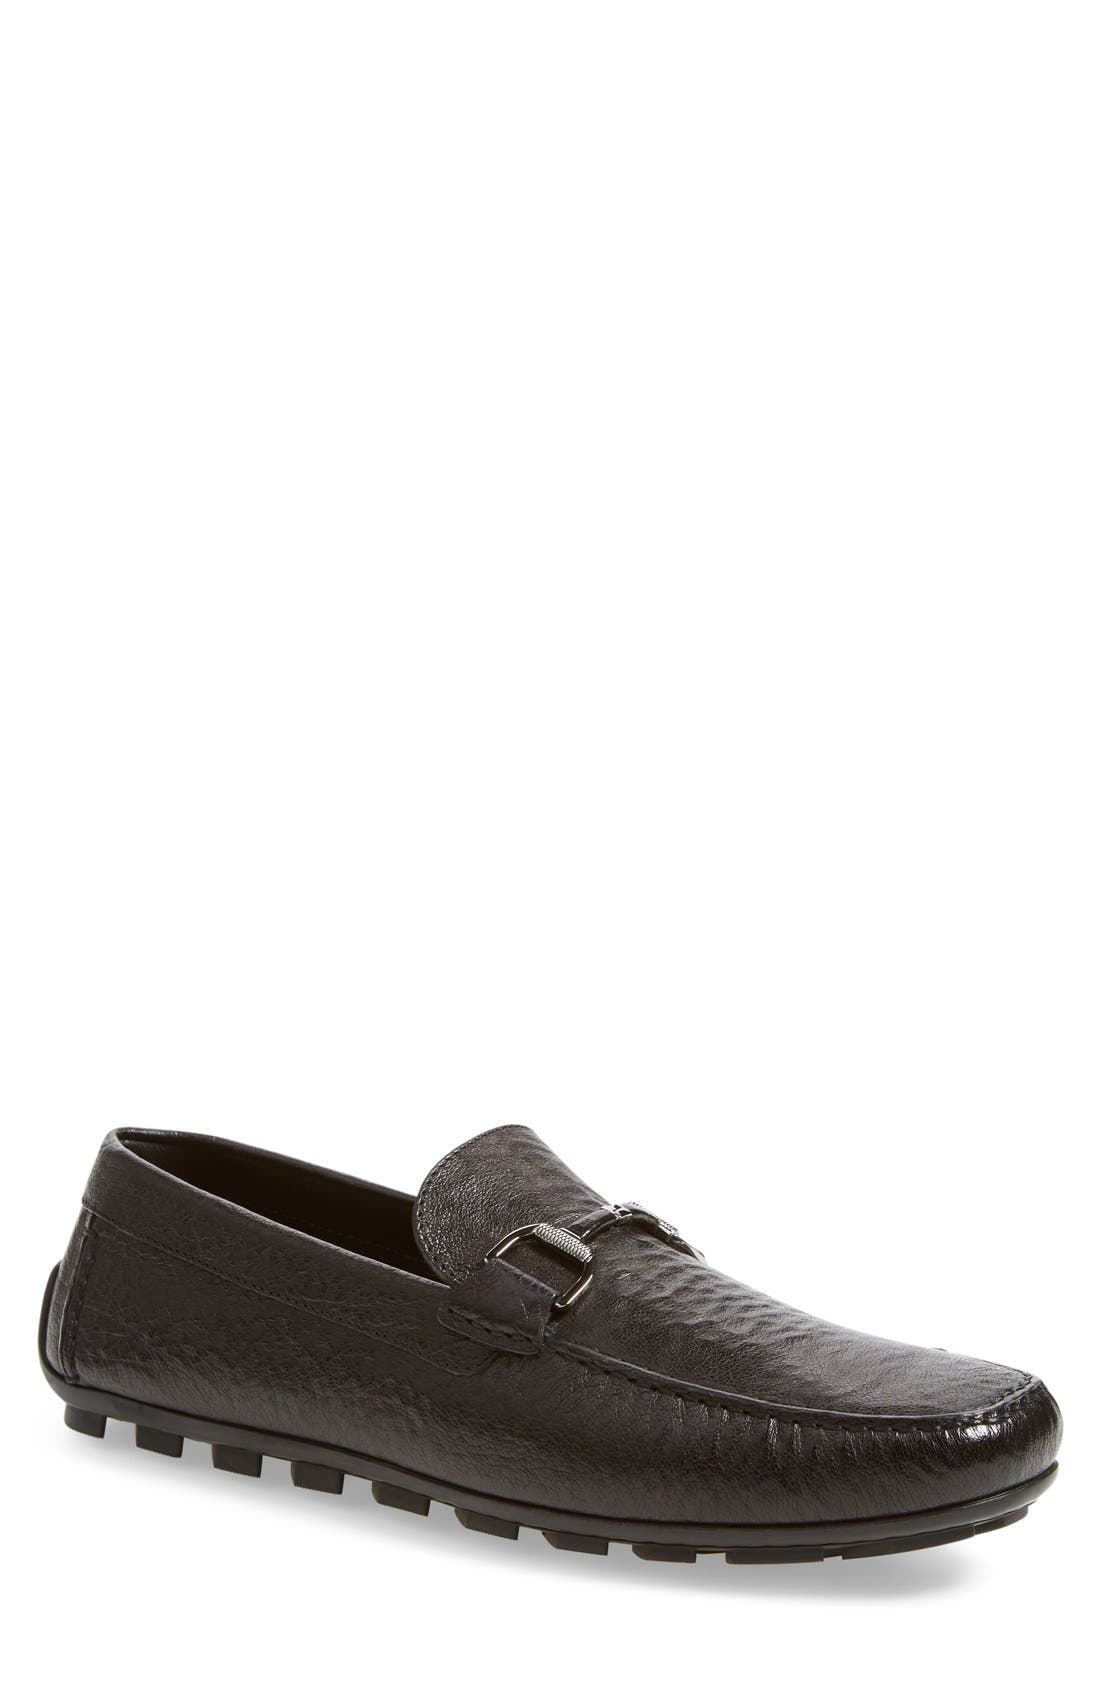 ERMENEGILDO ZEGNA Driving Shoe, Main, color, 001